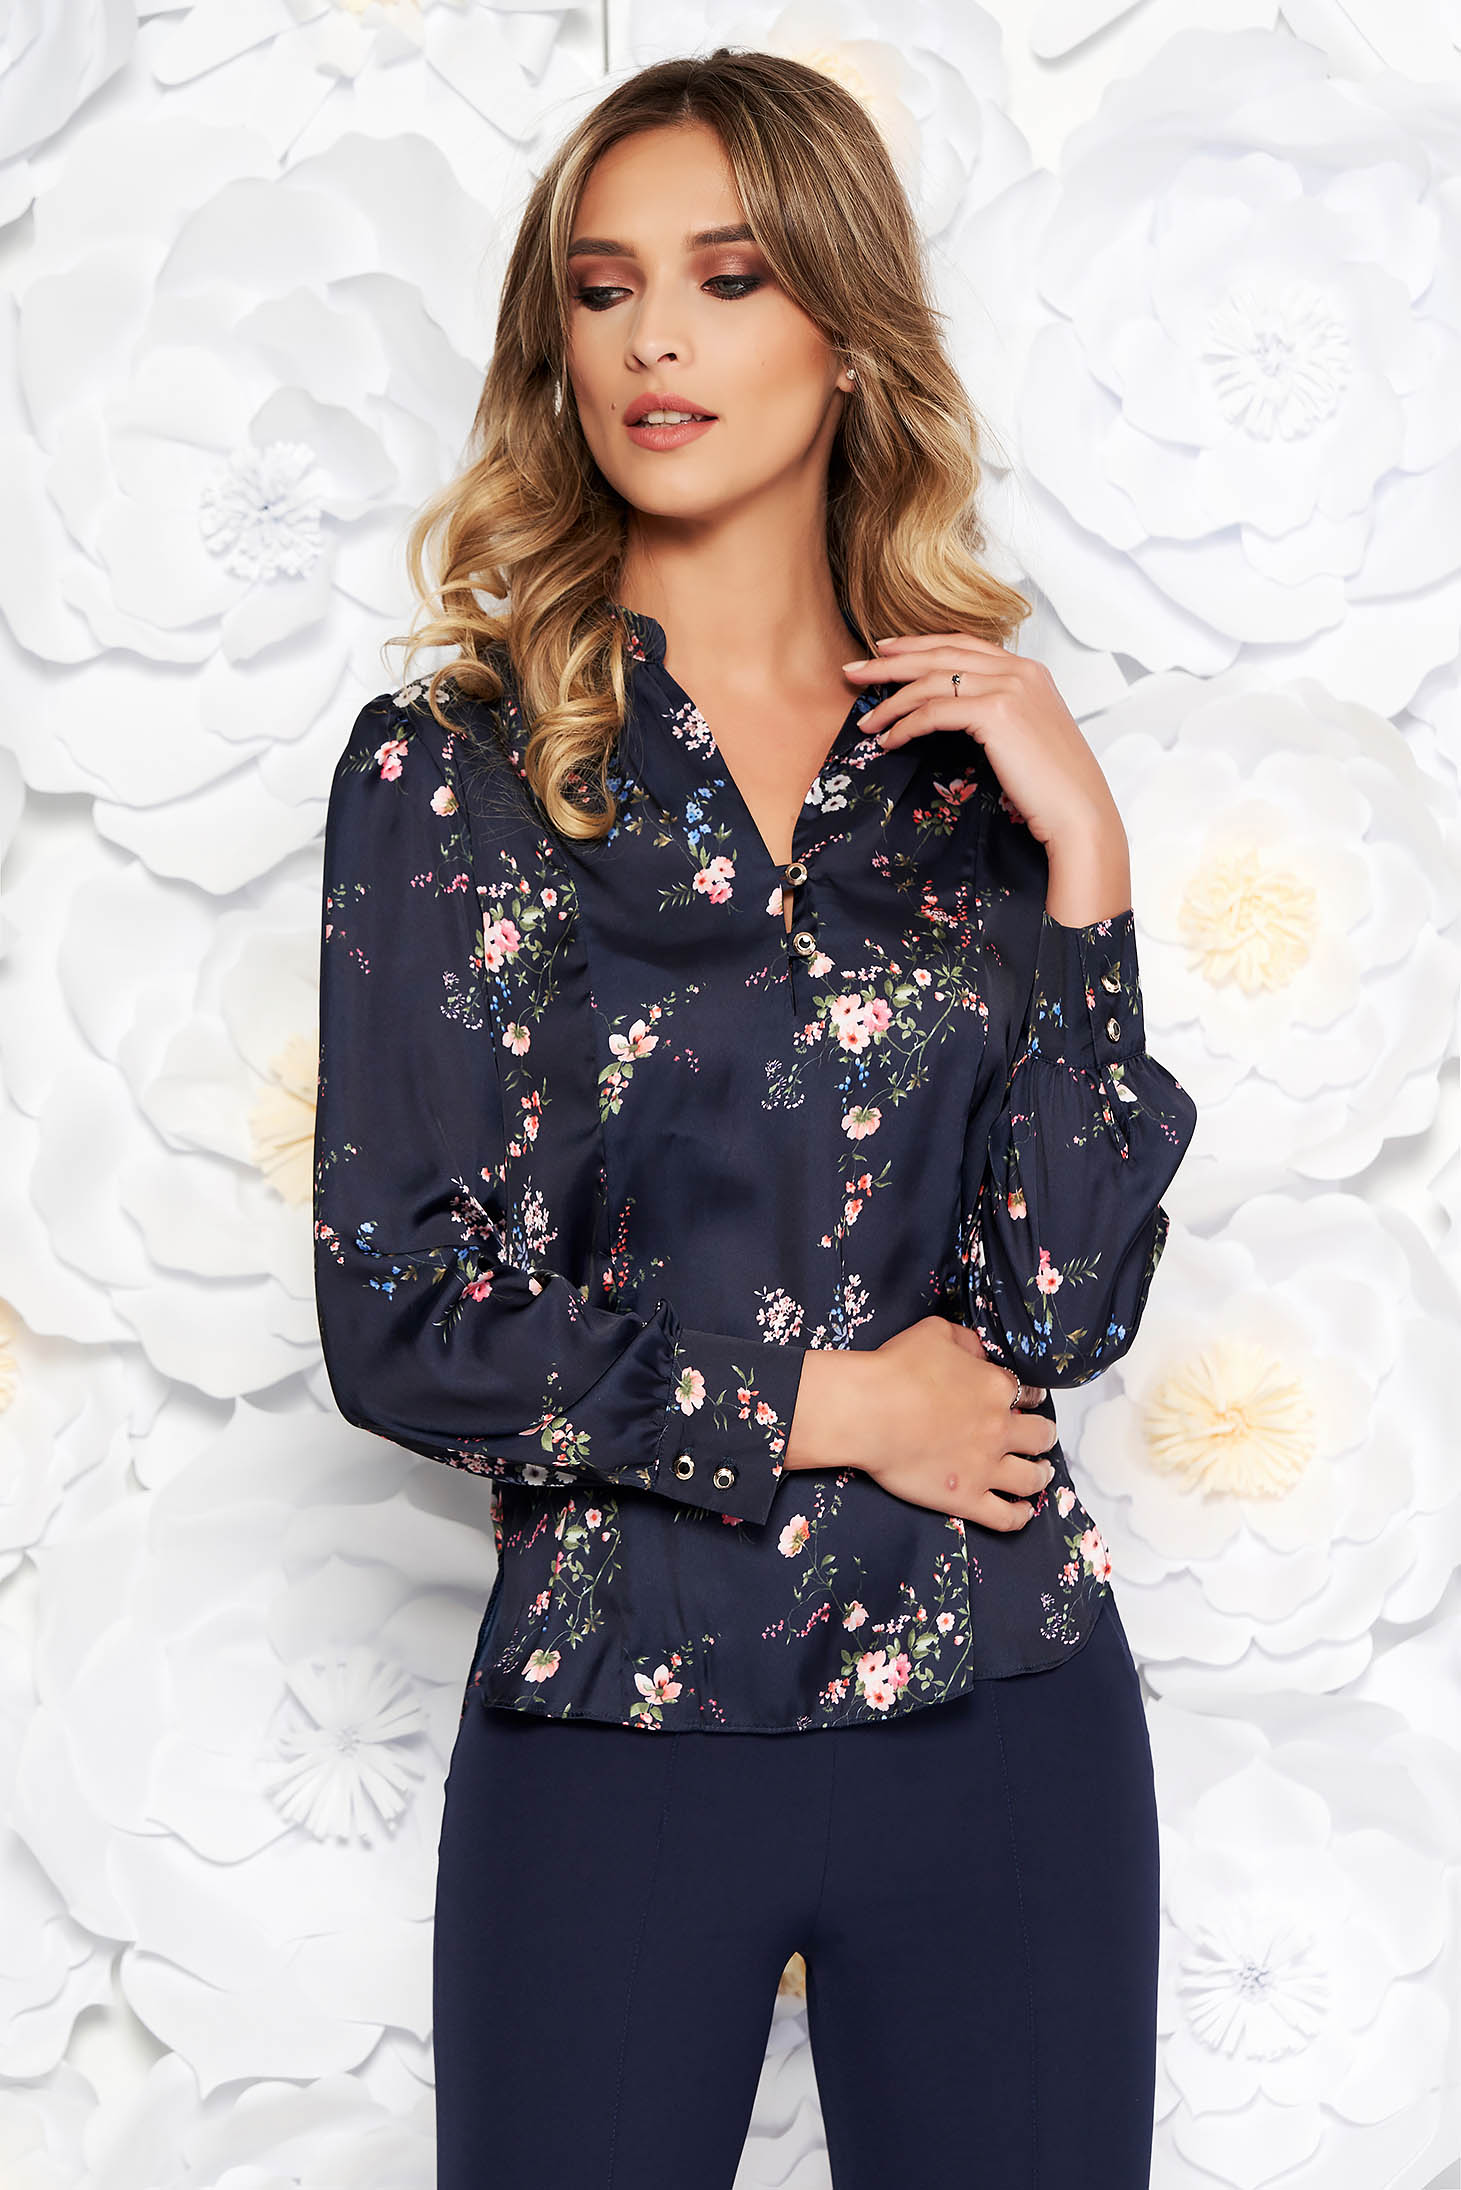 Darkblue elegant flared women`s shirt from satin fabric texture with floral prints